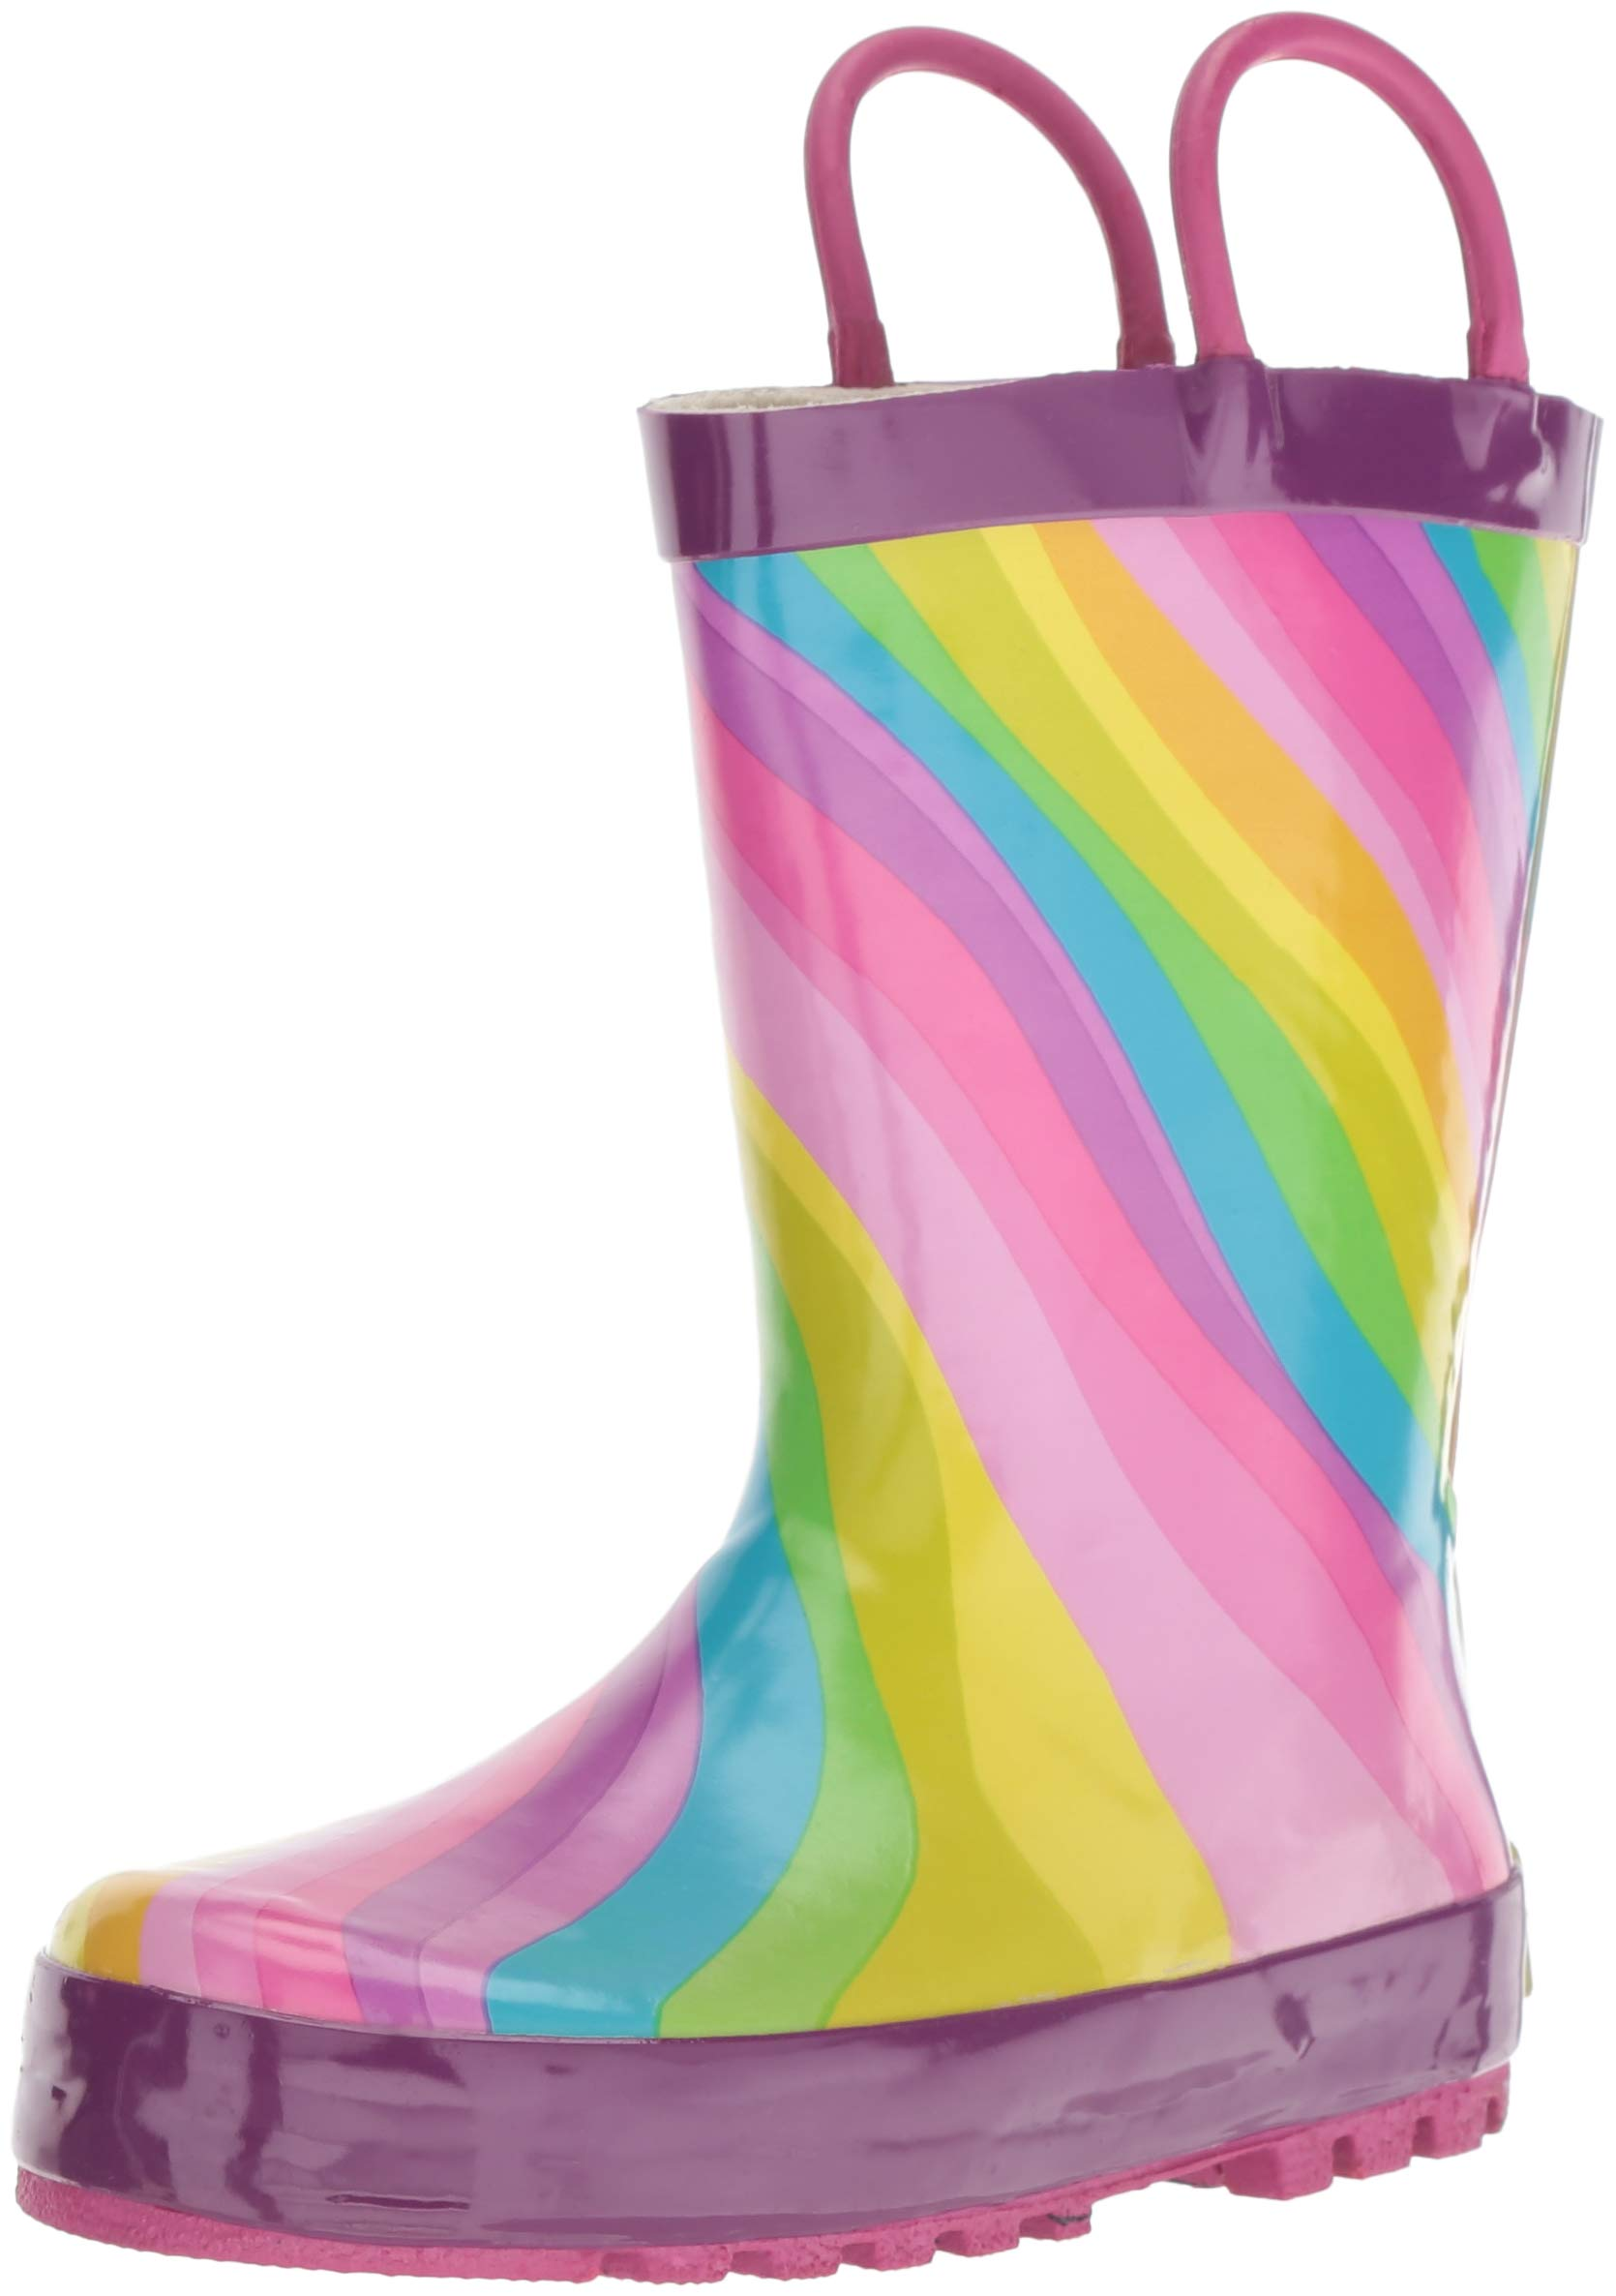 Western Chief Girls' Waterproof Printed Rain Boot, Rainbow, 7/8 Medium US Toddler